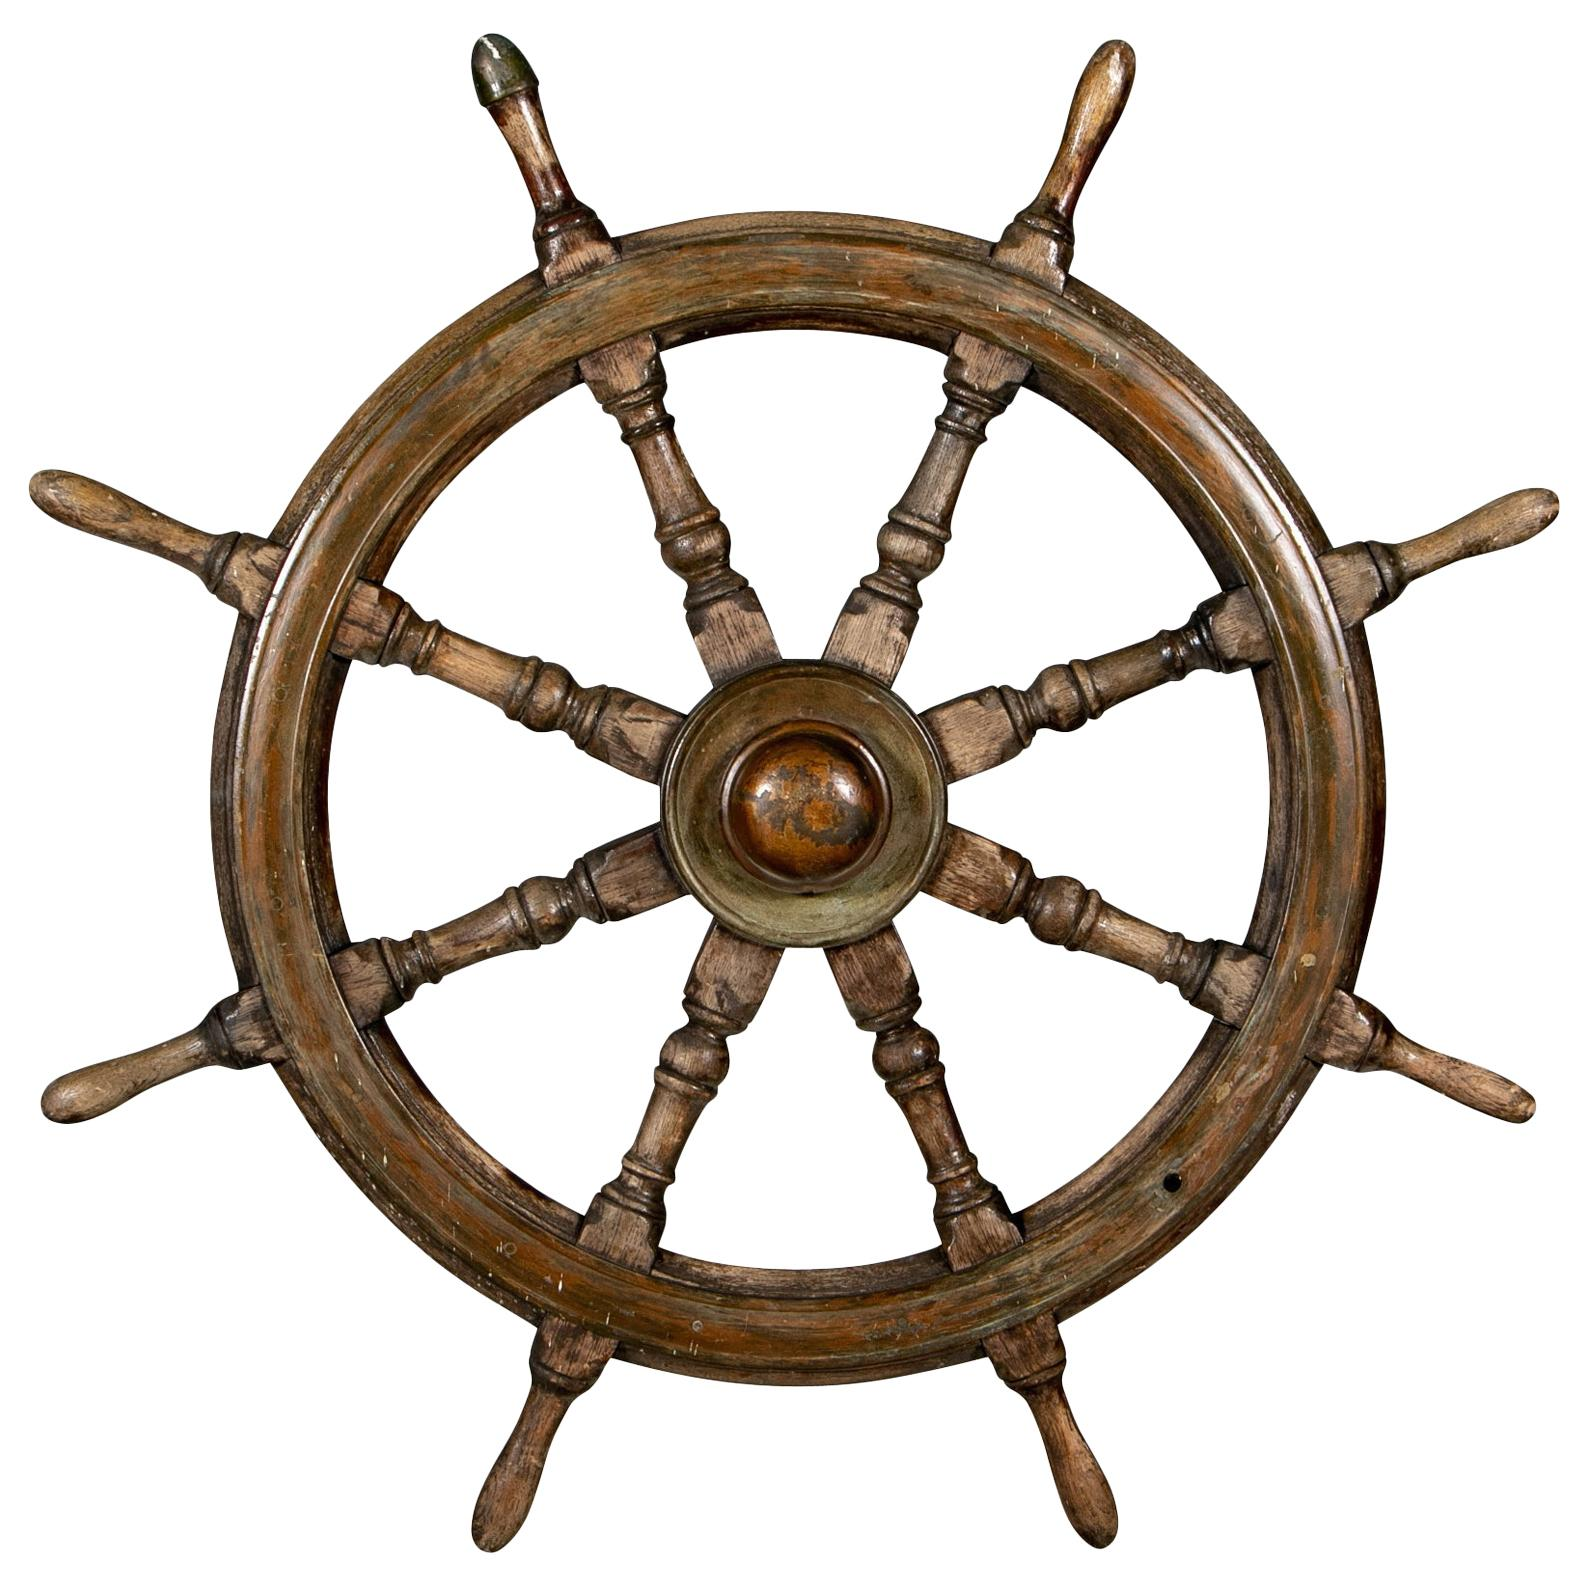 Antique Carved Wood Ship's Wheel